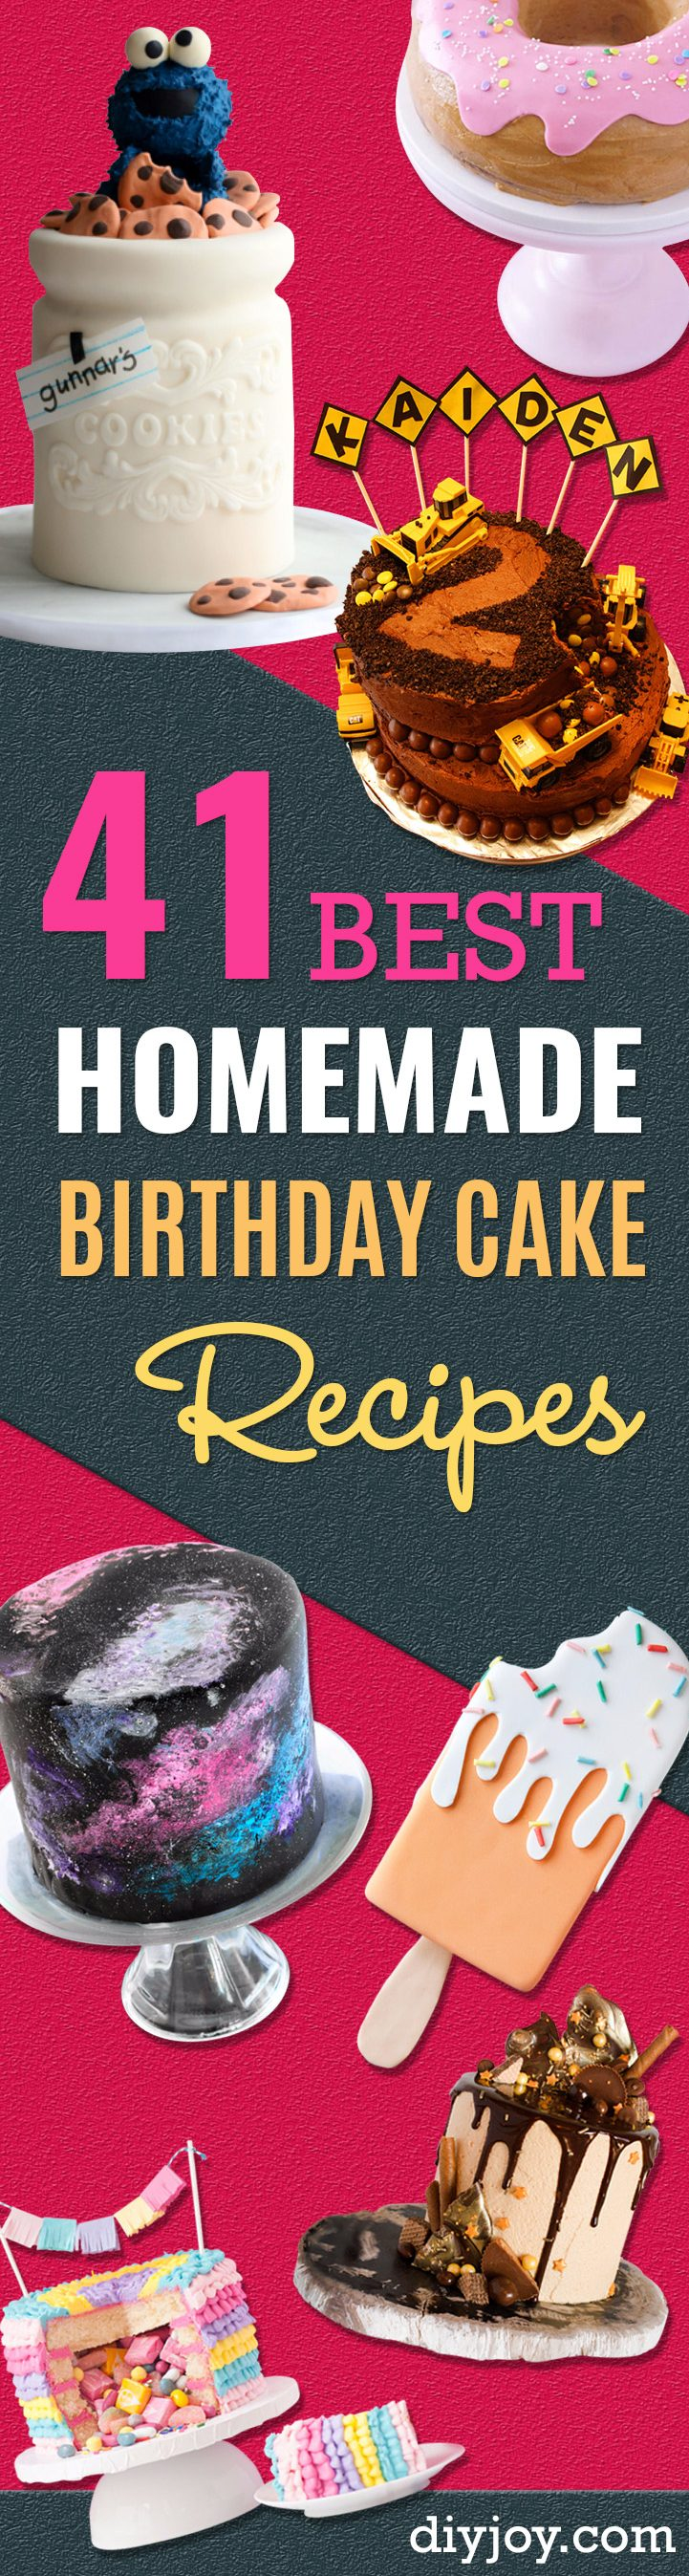 41 Best Homemade Birthday Cake Recipes - Birthday Cake Recipes From Scratch, Delicious Birthday Cake Recipes To Make, Quick And Easy Birthday Cake Recipes, Awesome Birthday Cake Ideas